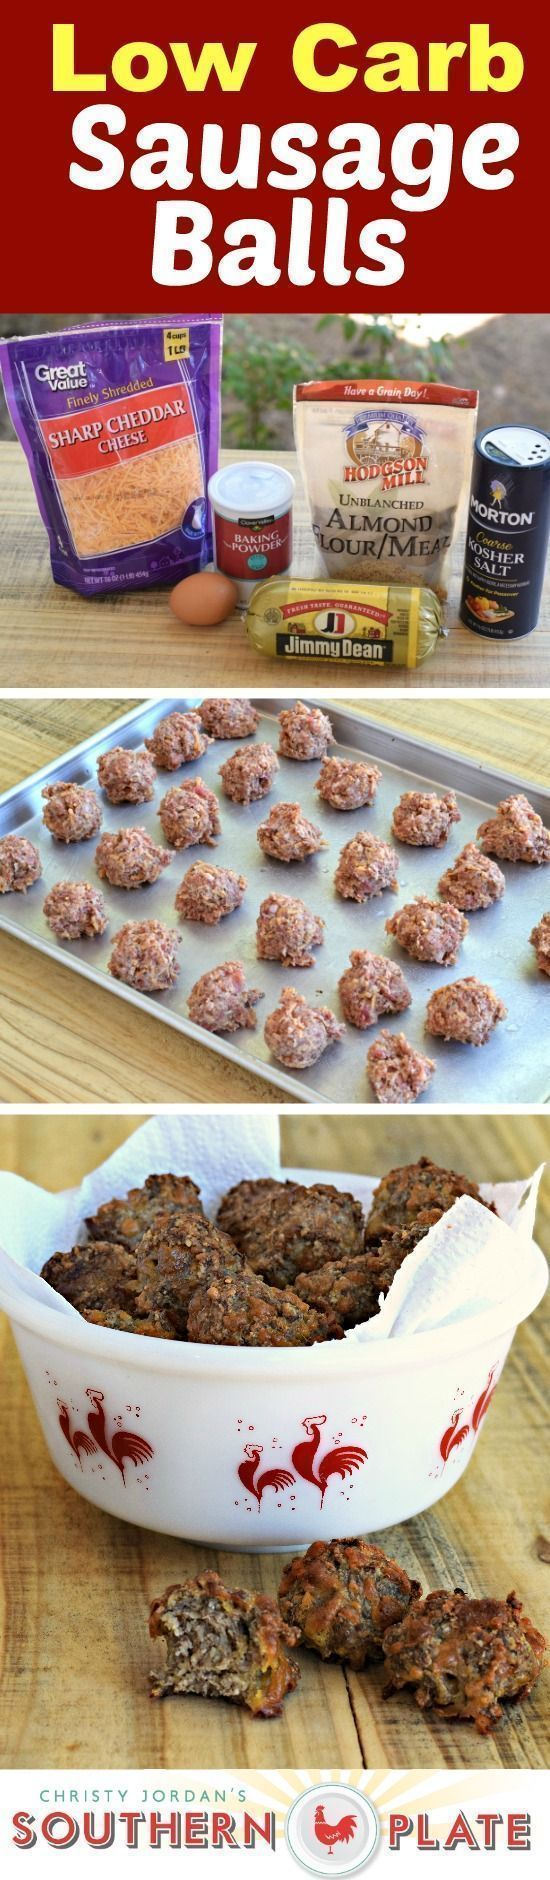 Low Carb Sausage Balls! Recipe from southern plate. #recipes #easy #lowcarb #appetizers #sausageballs